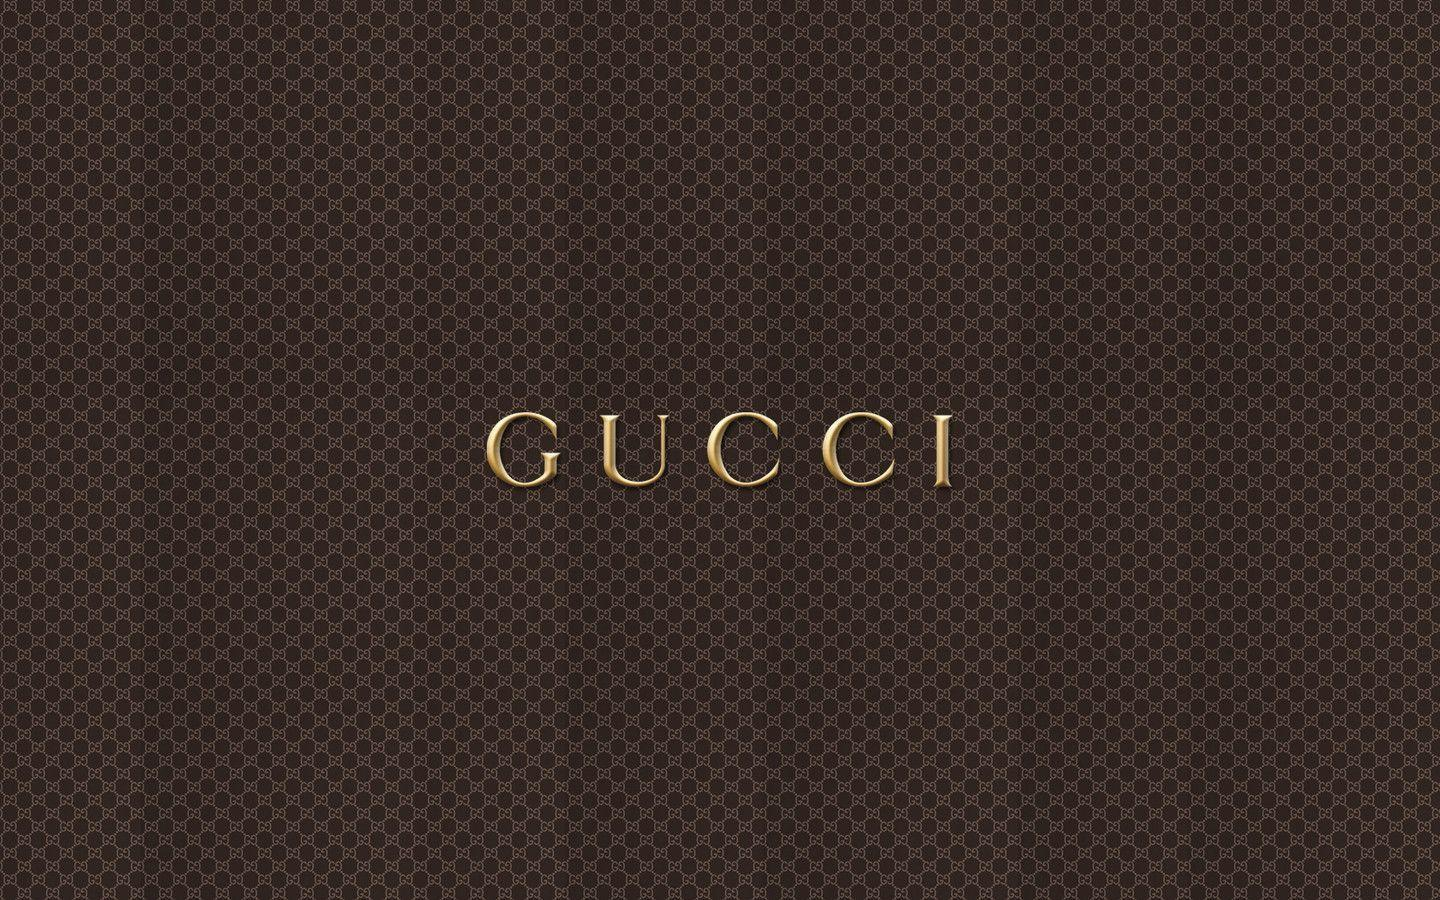 Gucci logo | Wallpapers Galaxy